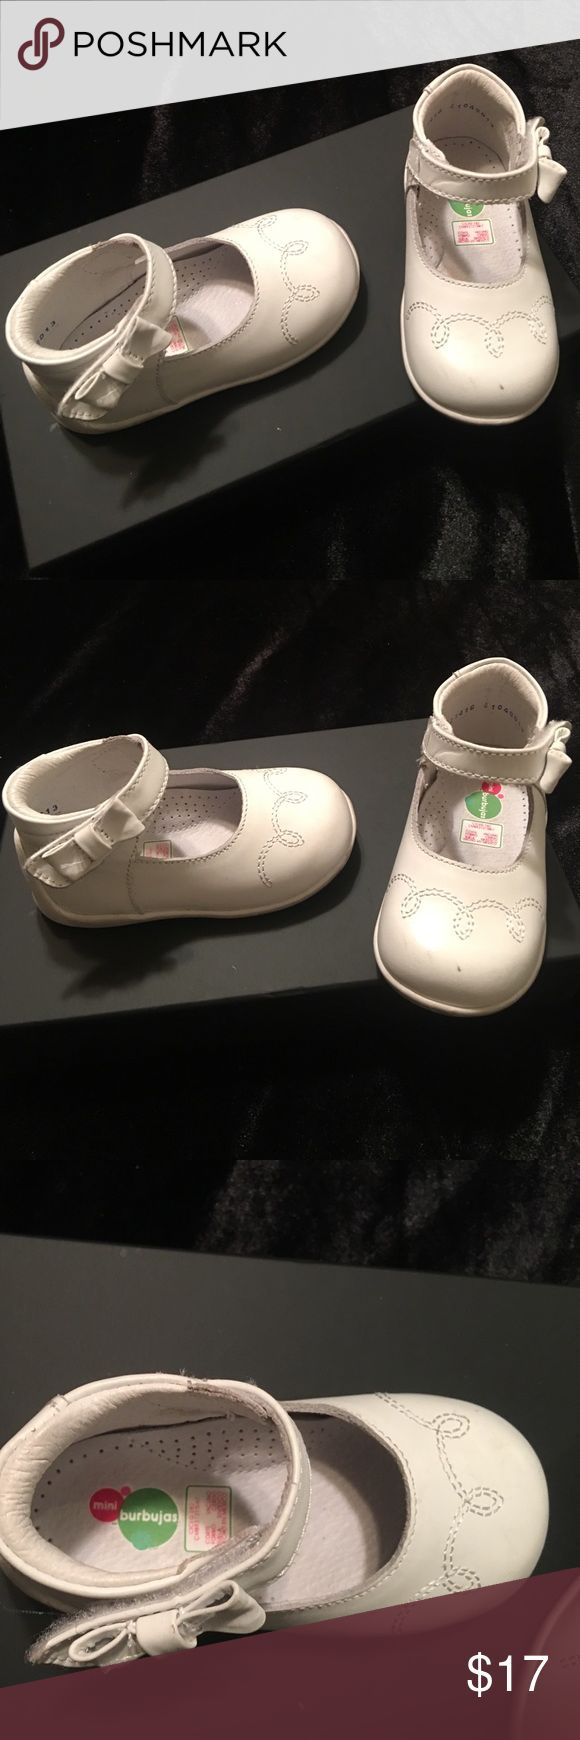 White Toddler booties White toddler booties!' Gently used great condition beautiful booties perfect for any toddler princess👑 Shoes Dress Shoes